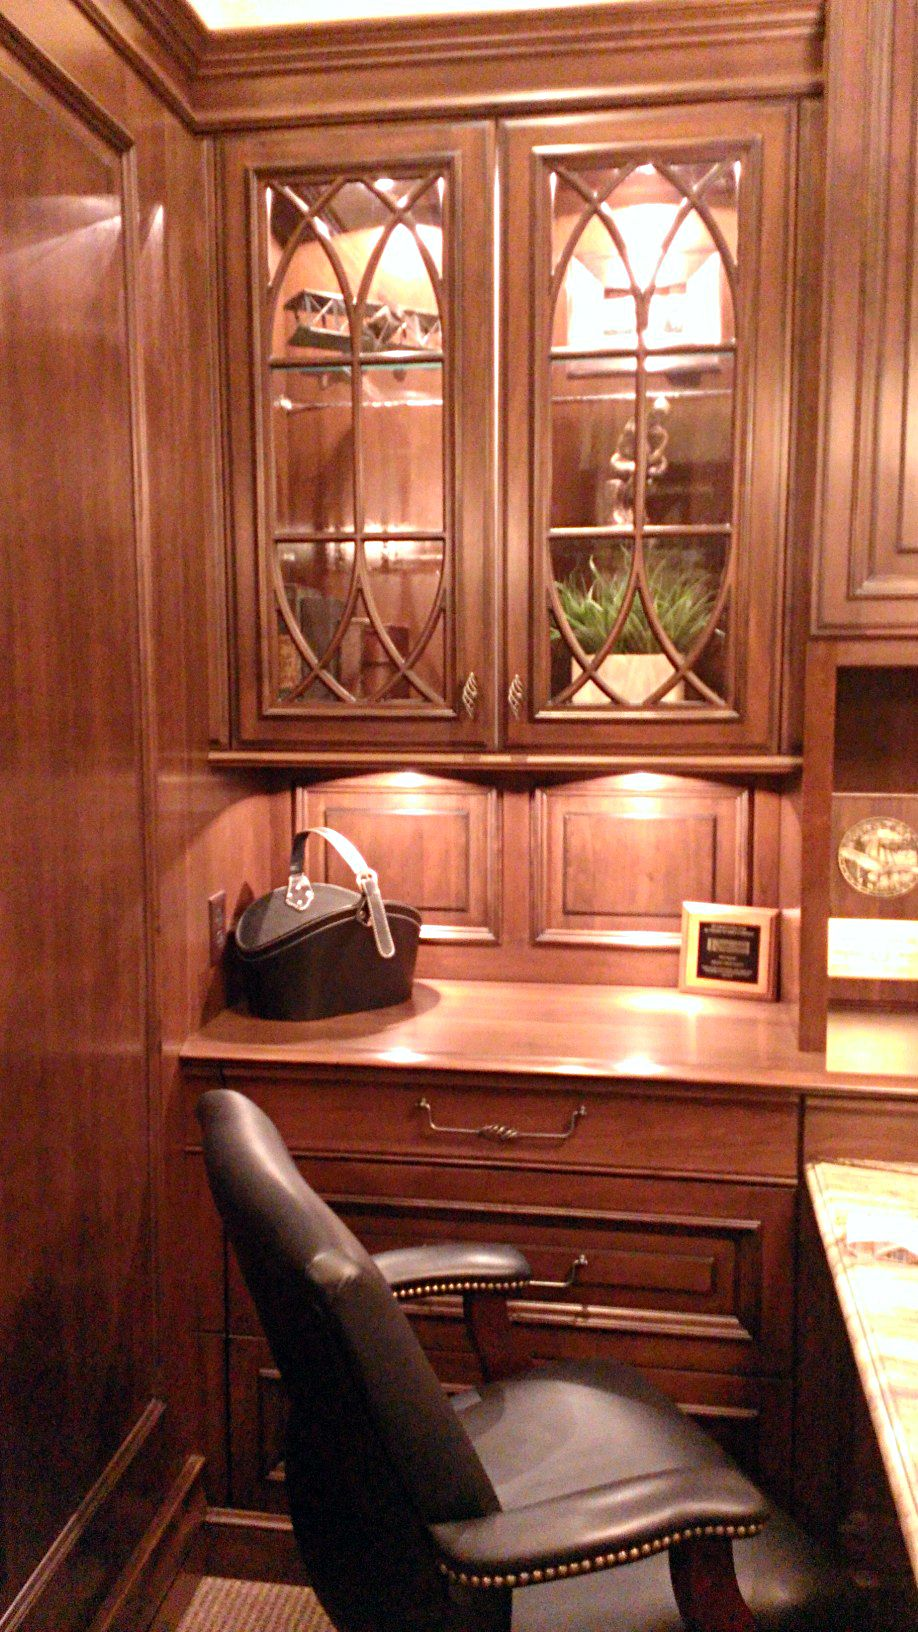 Custom Office Cabinet Design | Kenwood Kitchens in Lutherville, Mar ...